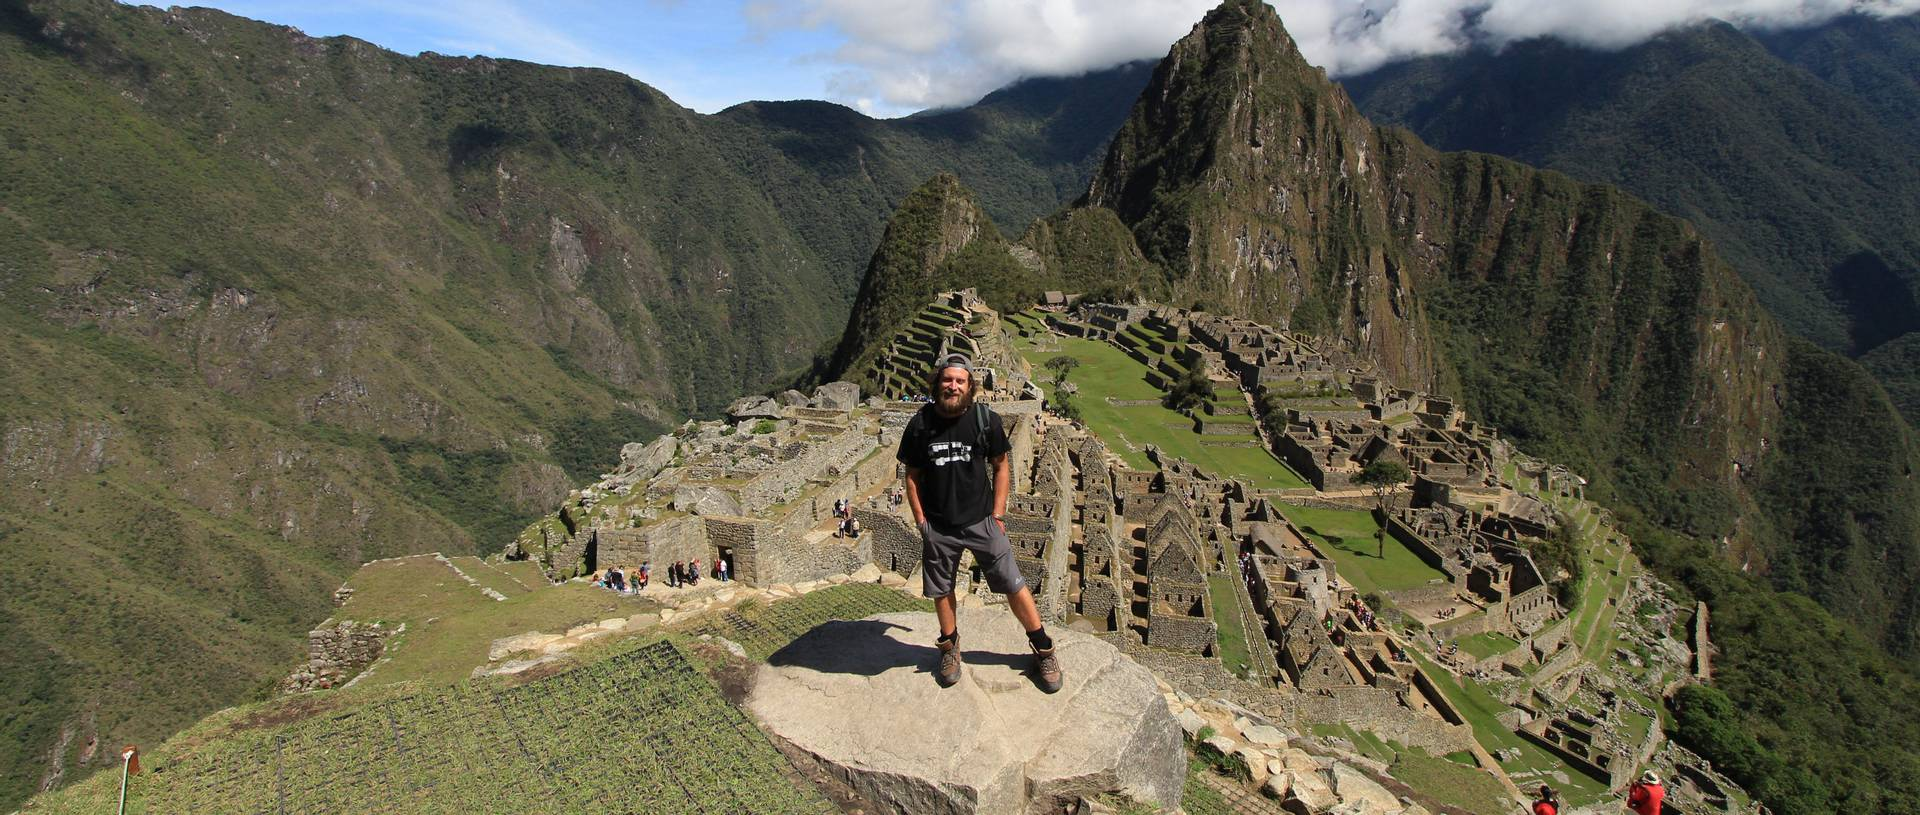 Cary standing at a view point of Machu Picchu.JPG